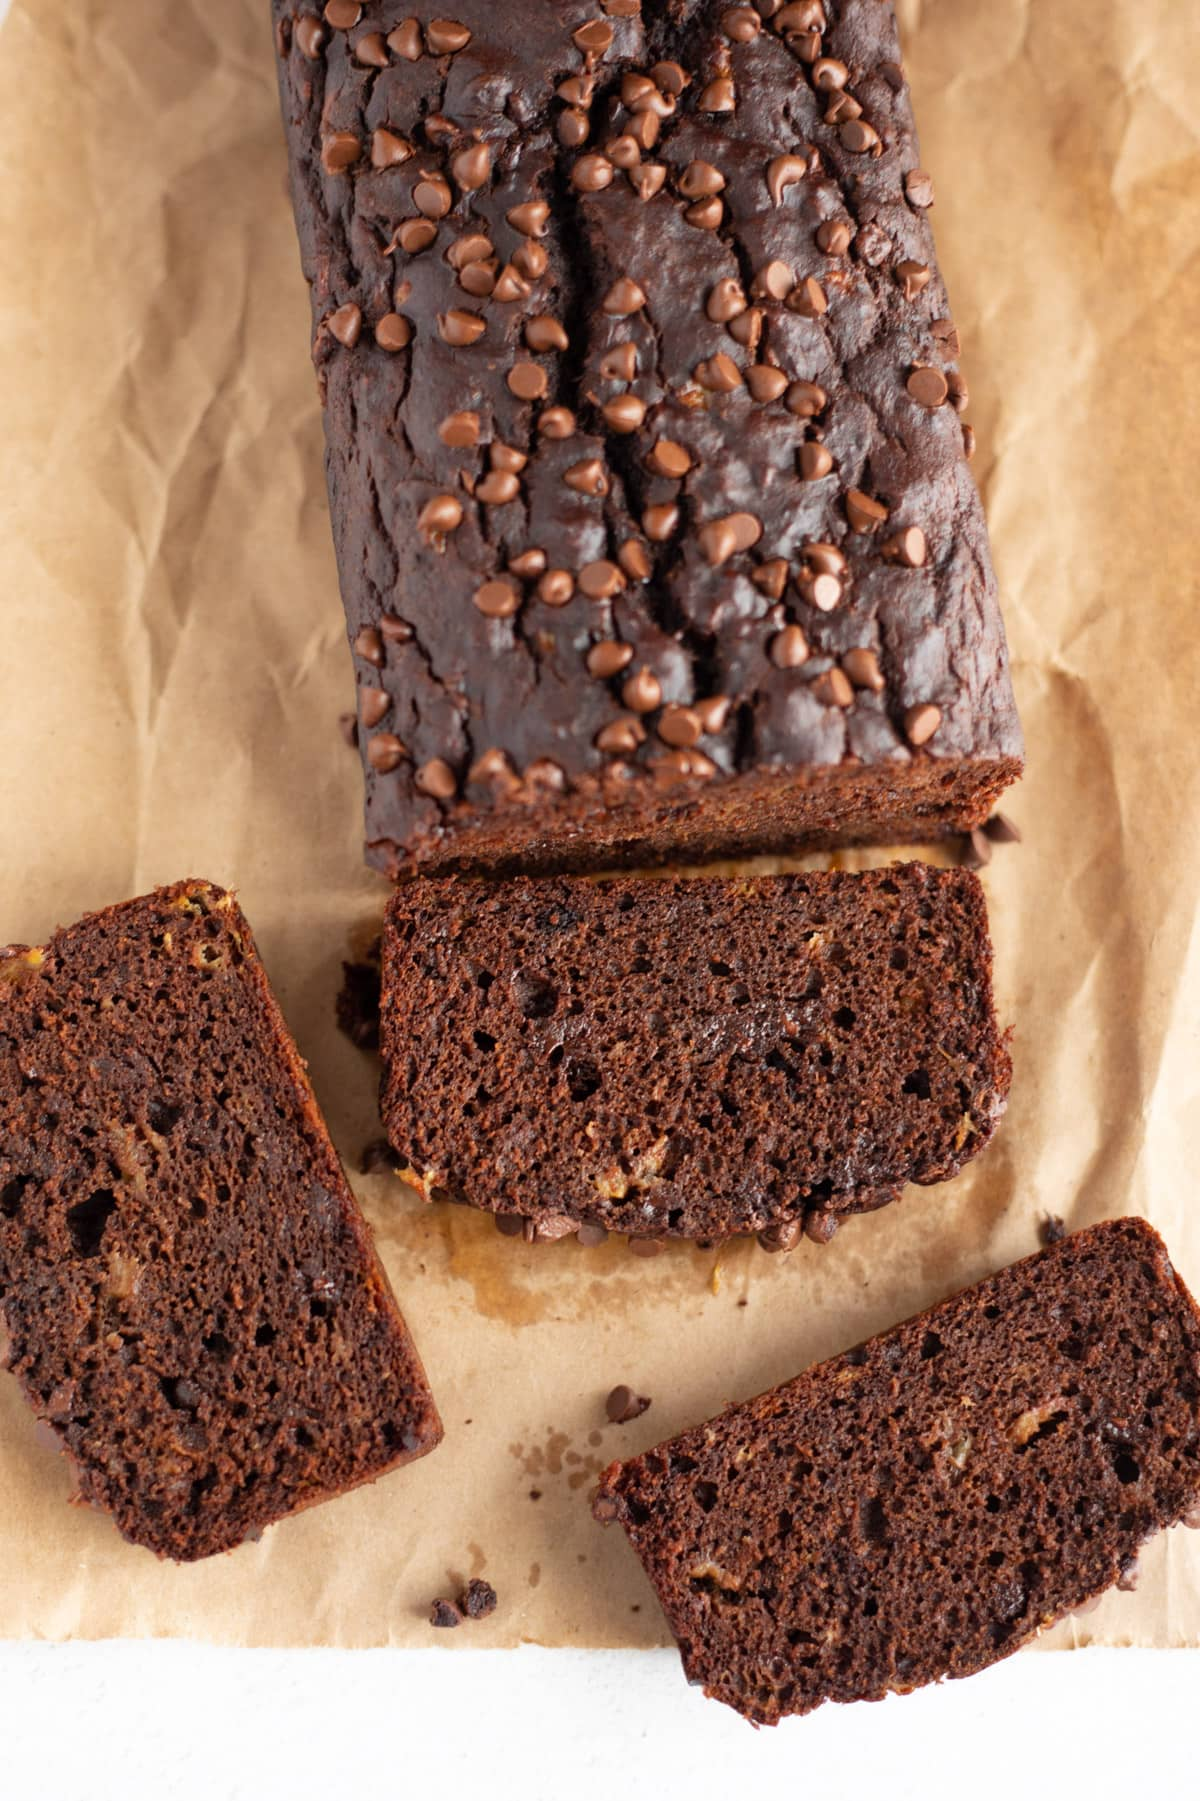 3 slices of chocolate banana loaf